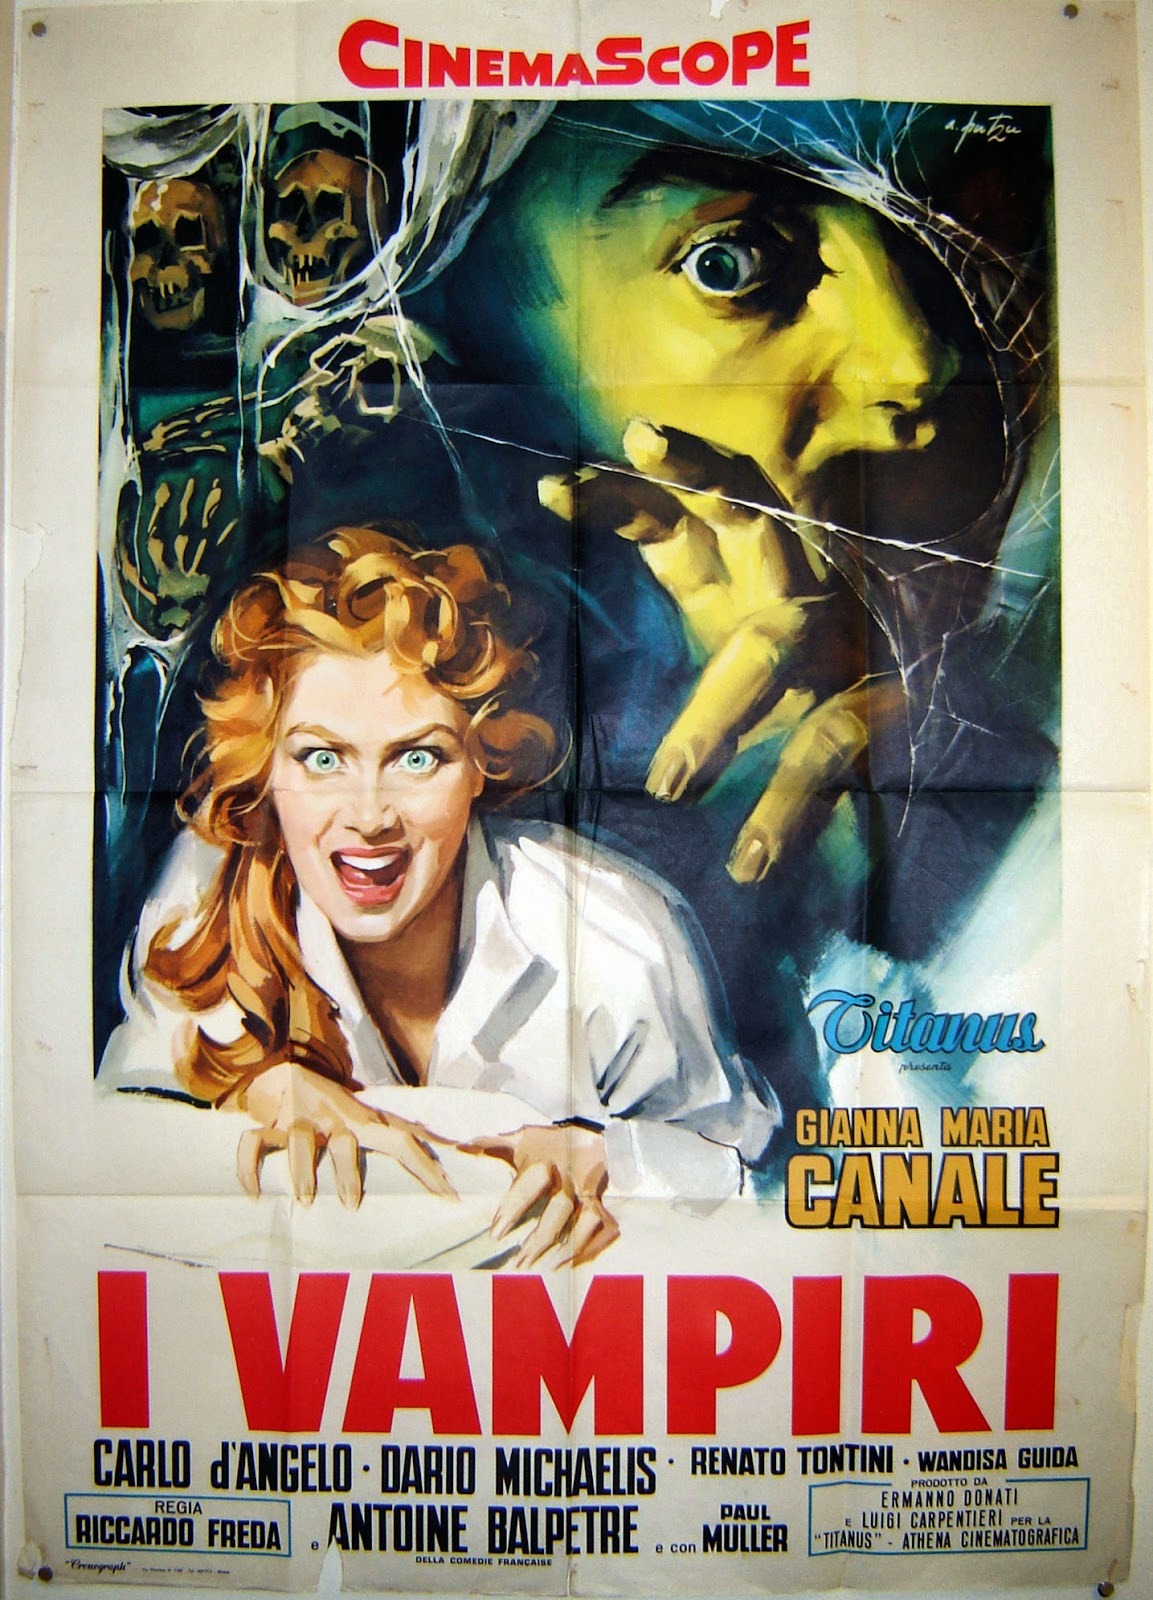 Italian Film Poster For Mario Bava's Lust Of The Vampire with stunning female vampire in the foreground and a spooky man grasping for her in the background.